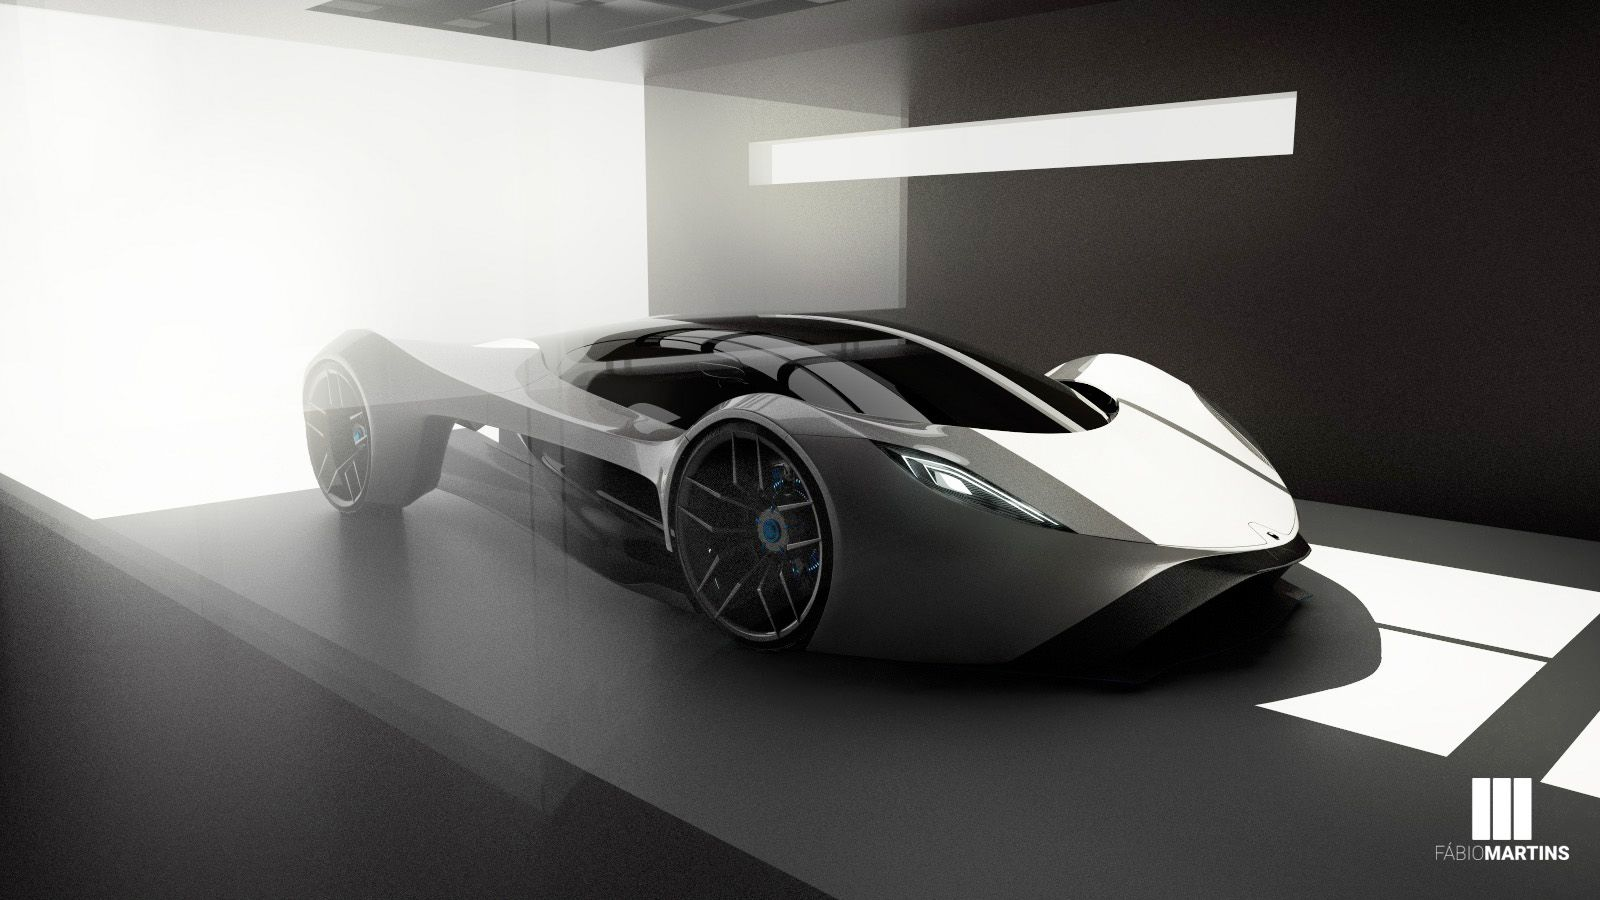 Razor Is A Futuristic Electric Supercar With A Full Carbon Fiber Body Inside The Wheels There Are Powerful Electric Motors That Power The Car Cars Super